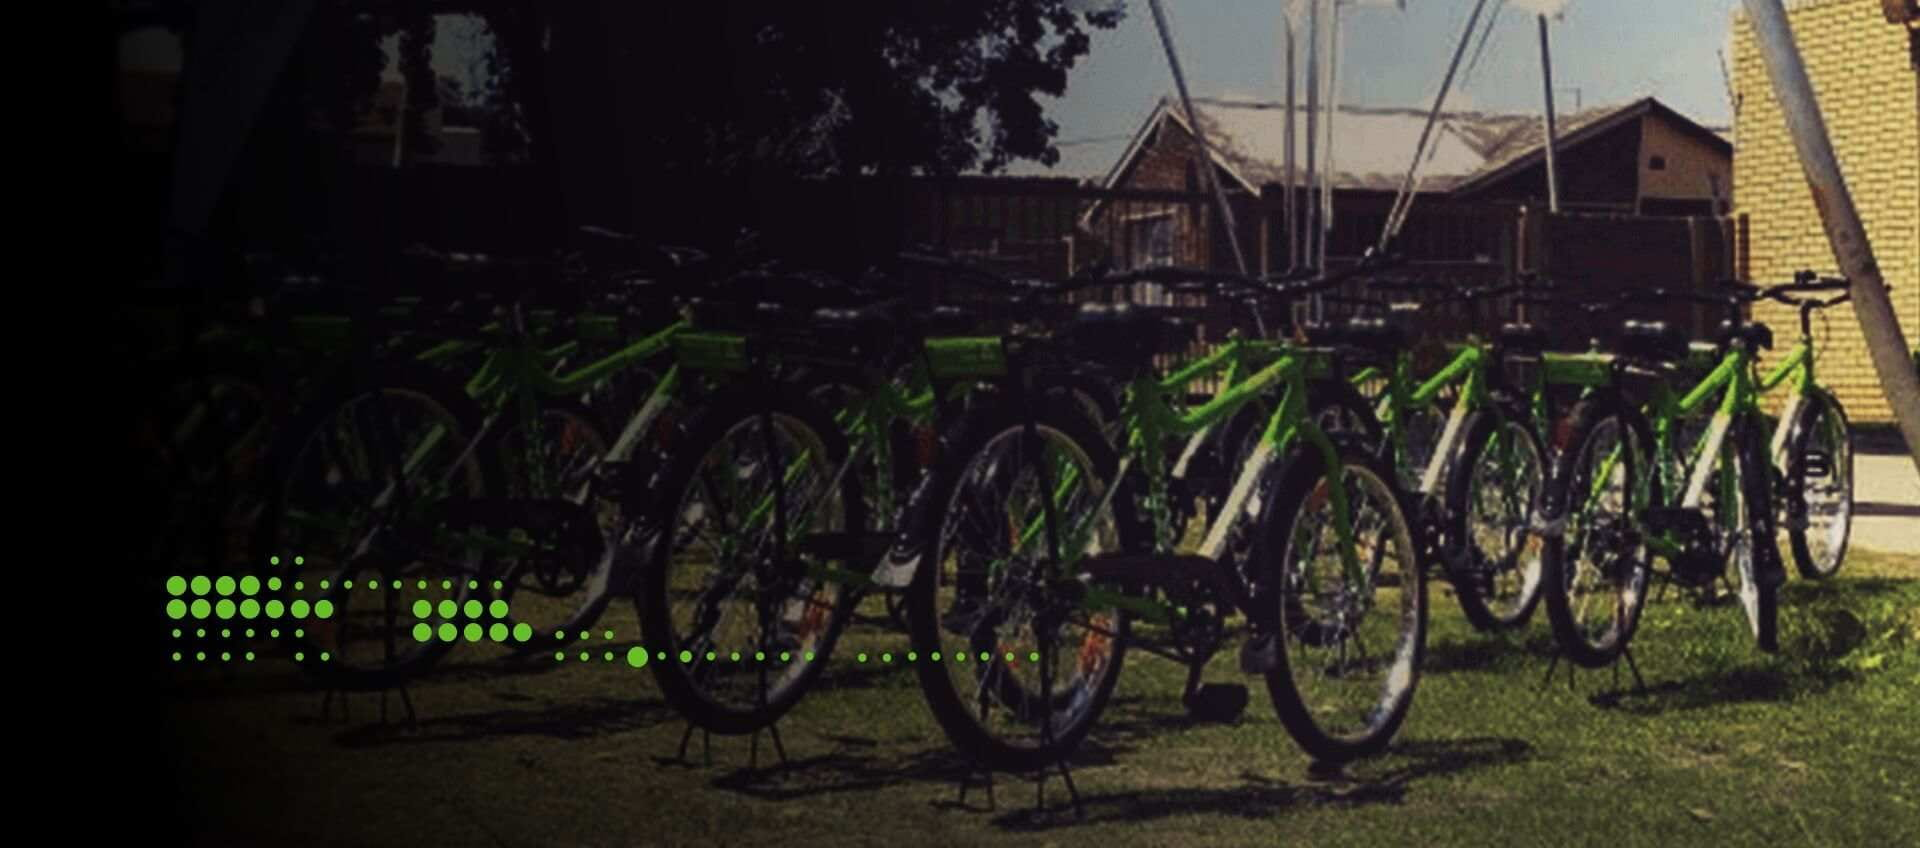 487 lives changed thanks to Qhubeka celebrity bike charity auction and raffle